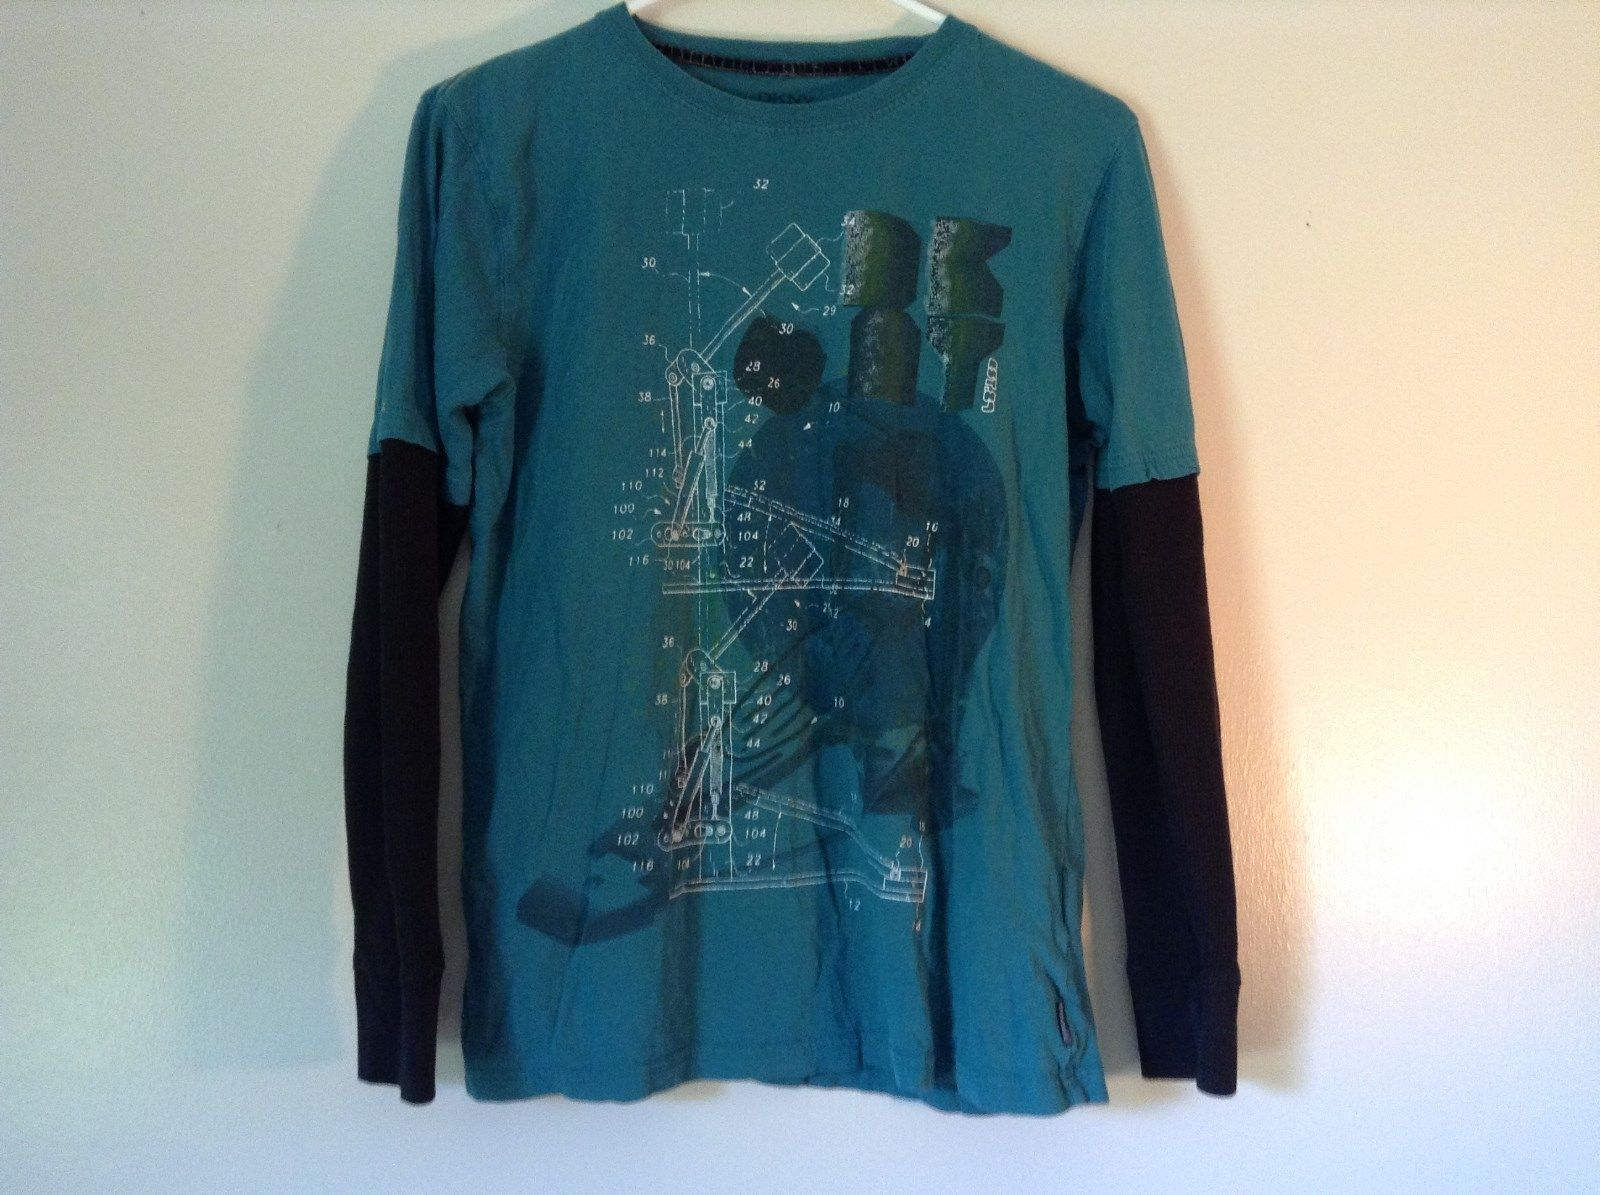 DKNY Turquoise Graphic T Shirt with Black Long Sleeves Design on Front Size L